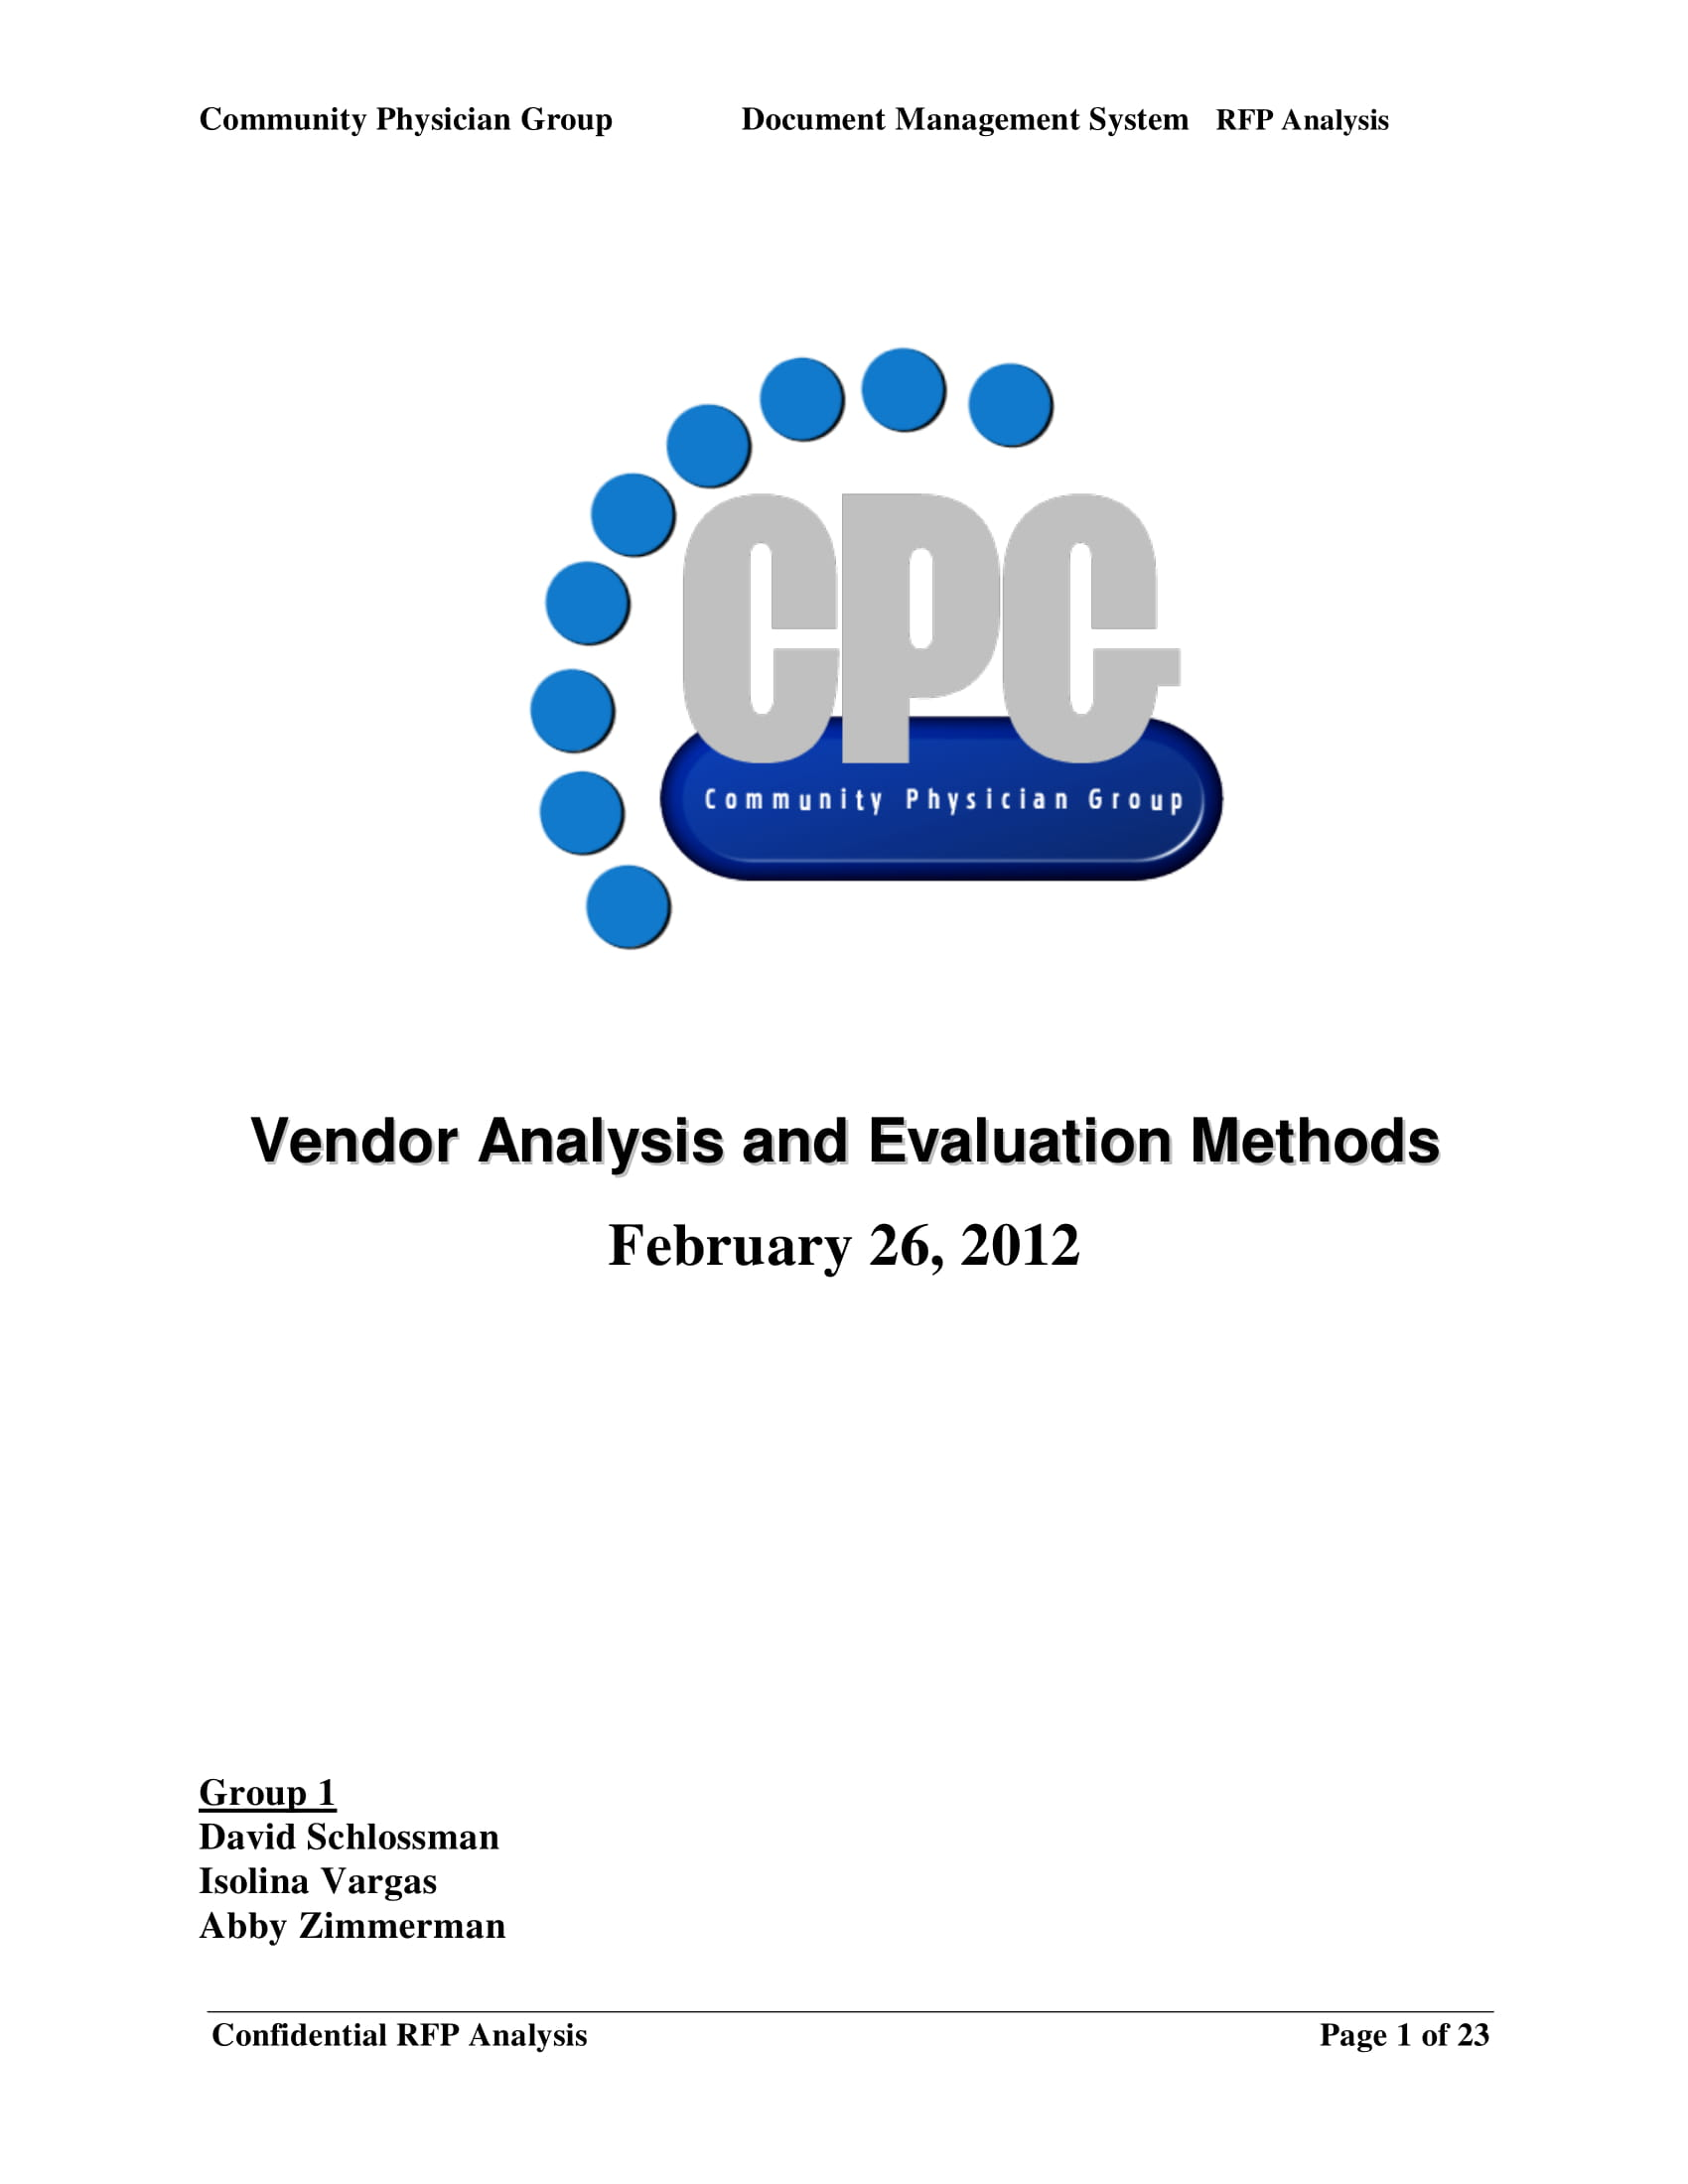 vendor analysis and evaluation methods example 01